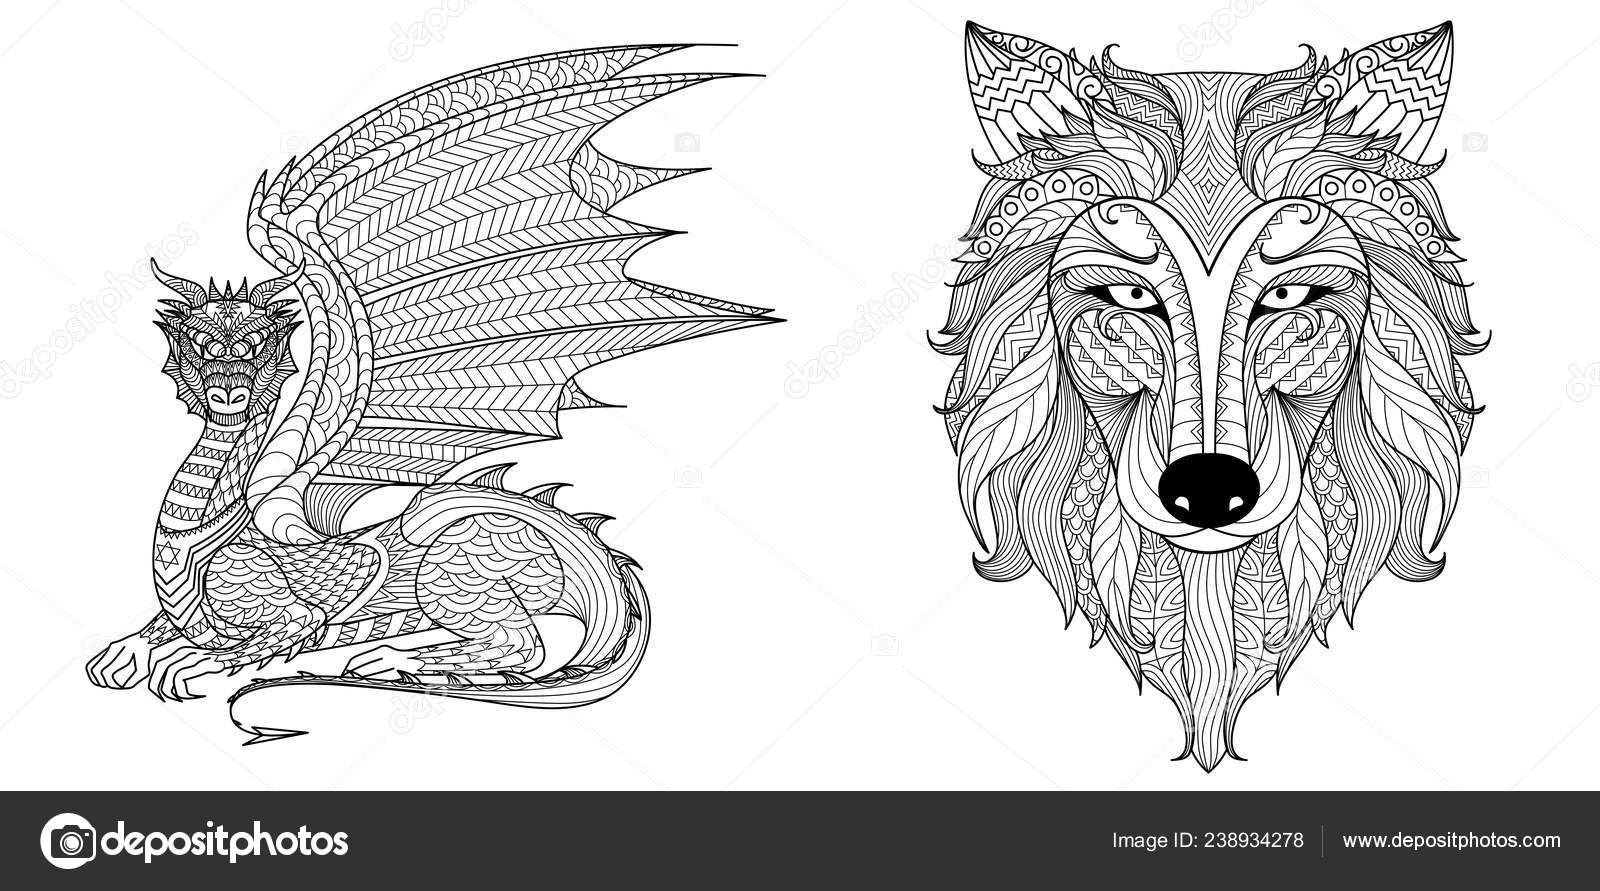 dragon wolf coloring pages free wolf dragon line art by wildlorecreatures on deviantart wolf pages dragon coloring